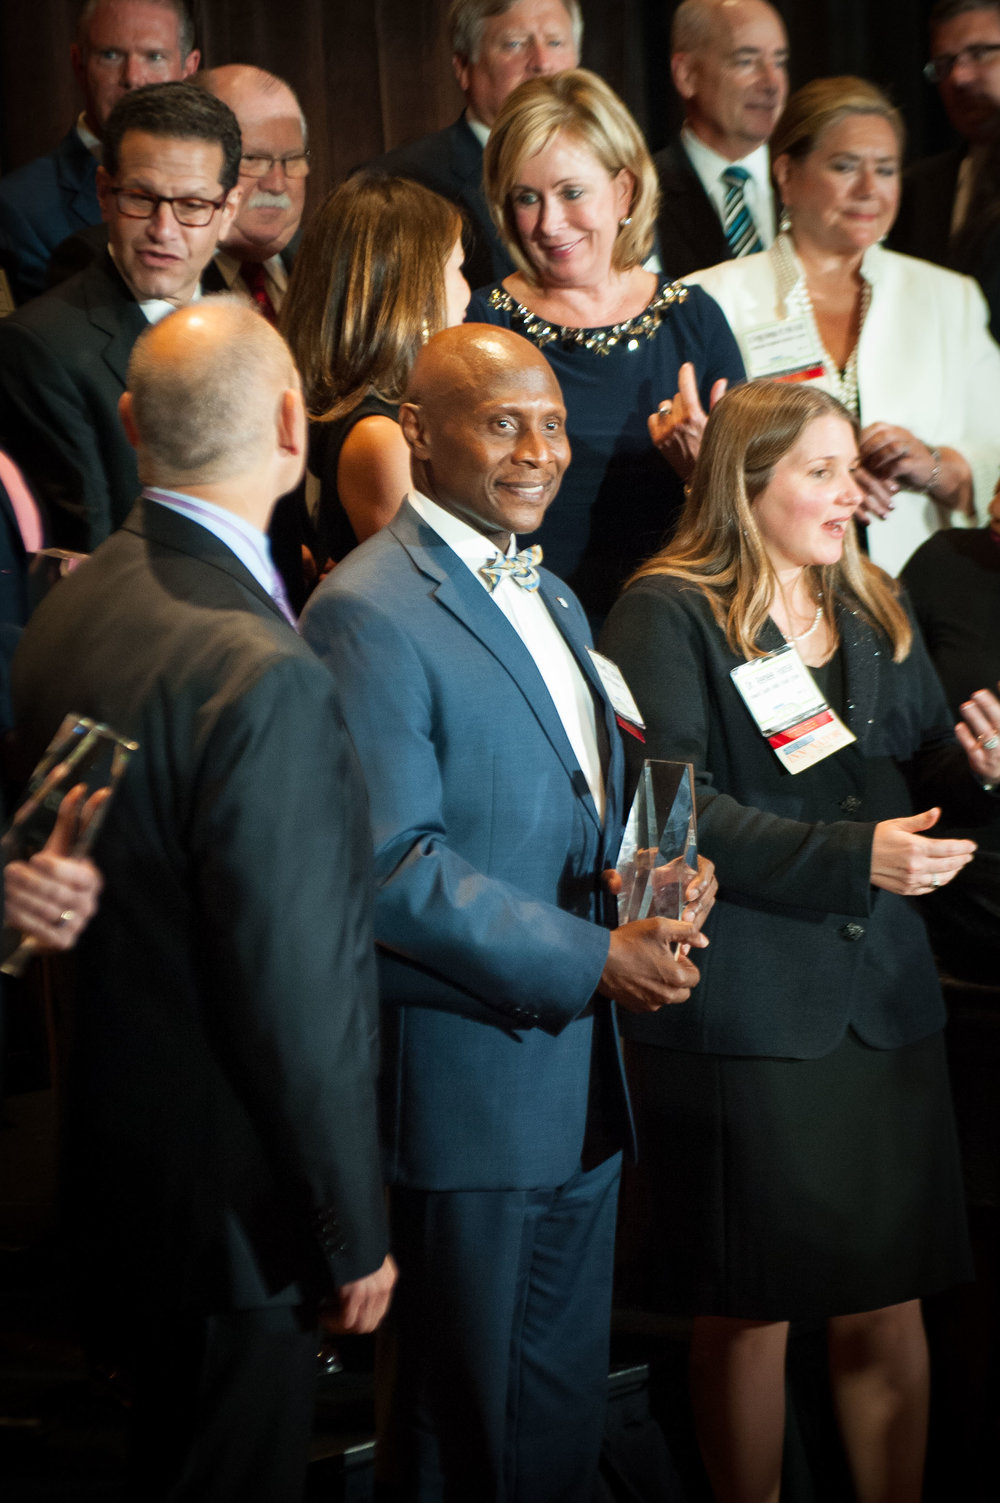 Baltimore Business Journal 50 Top CEO of the Year Award.